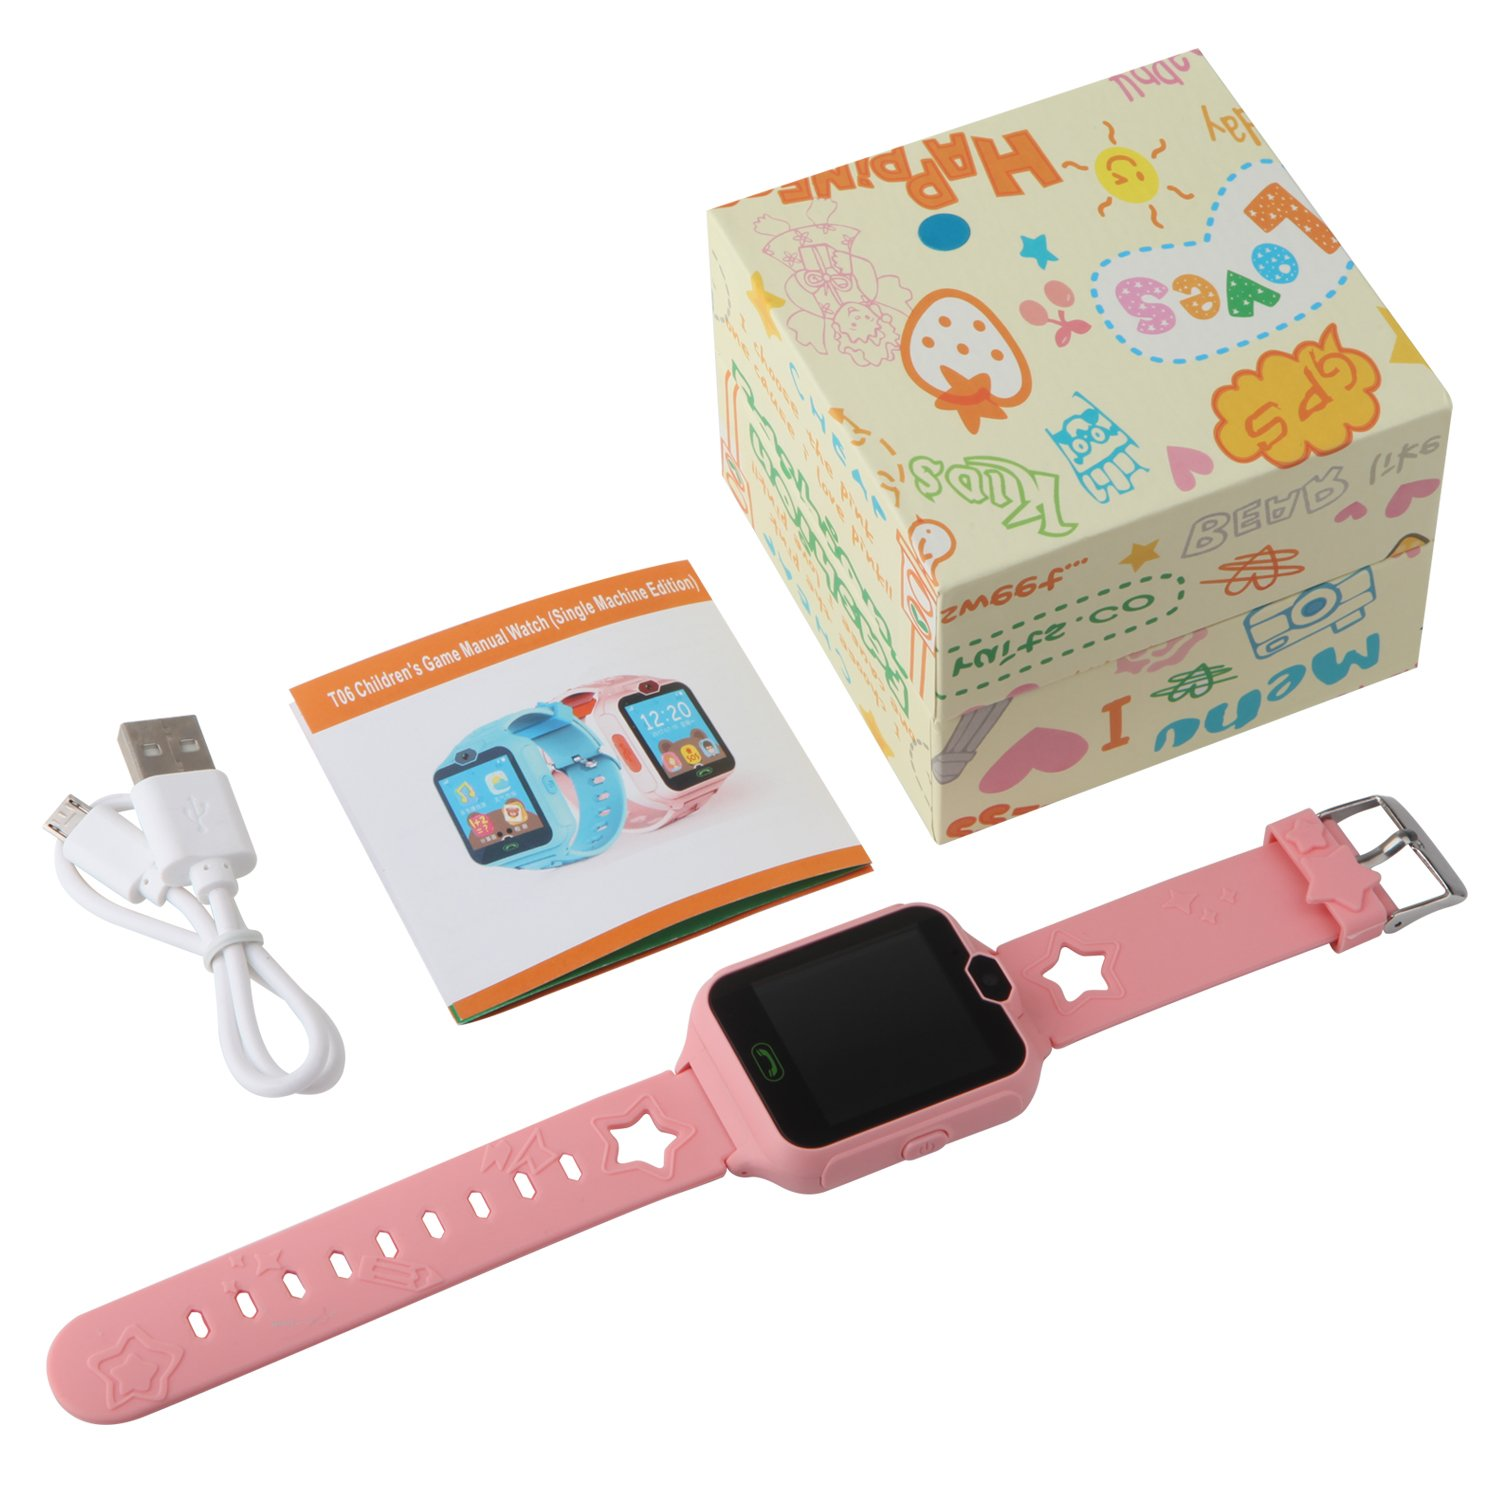 HSX_Z Phone Watch for Kids Smart Watch for Kids with Digital Camera Touch Screen, Phone Game Cool Toys Watch Gifts for Girls Boys Children Birthday Gifts Watch£­Pink by HSX_Z (Image #7)